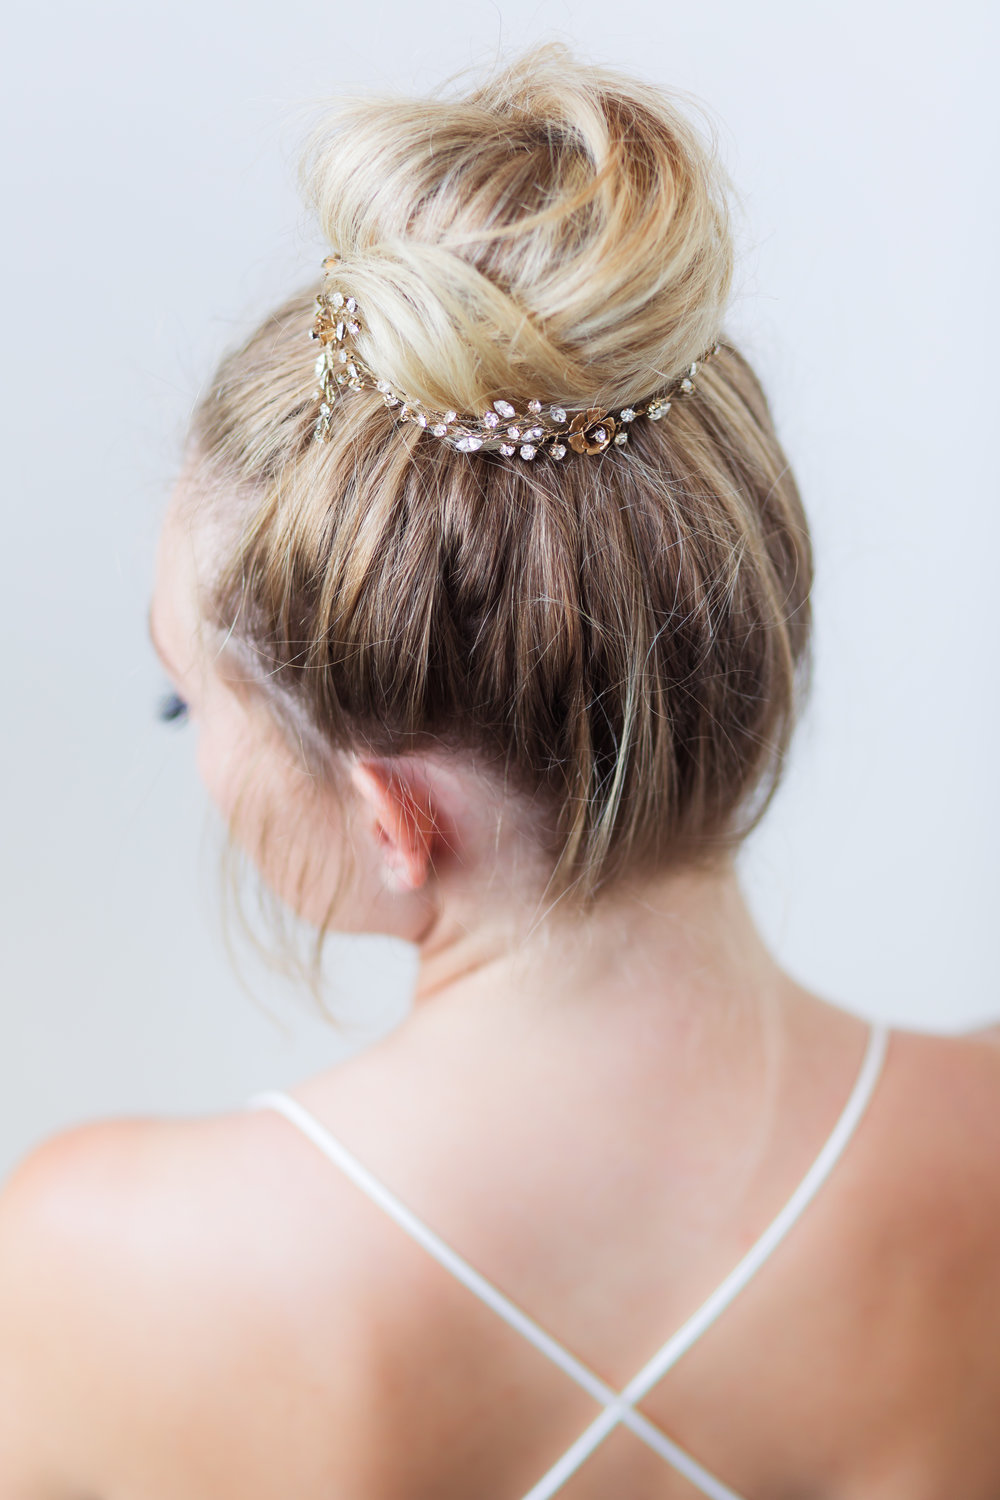 Wear a bridal hair vine in updo